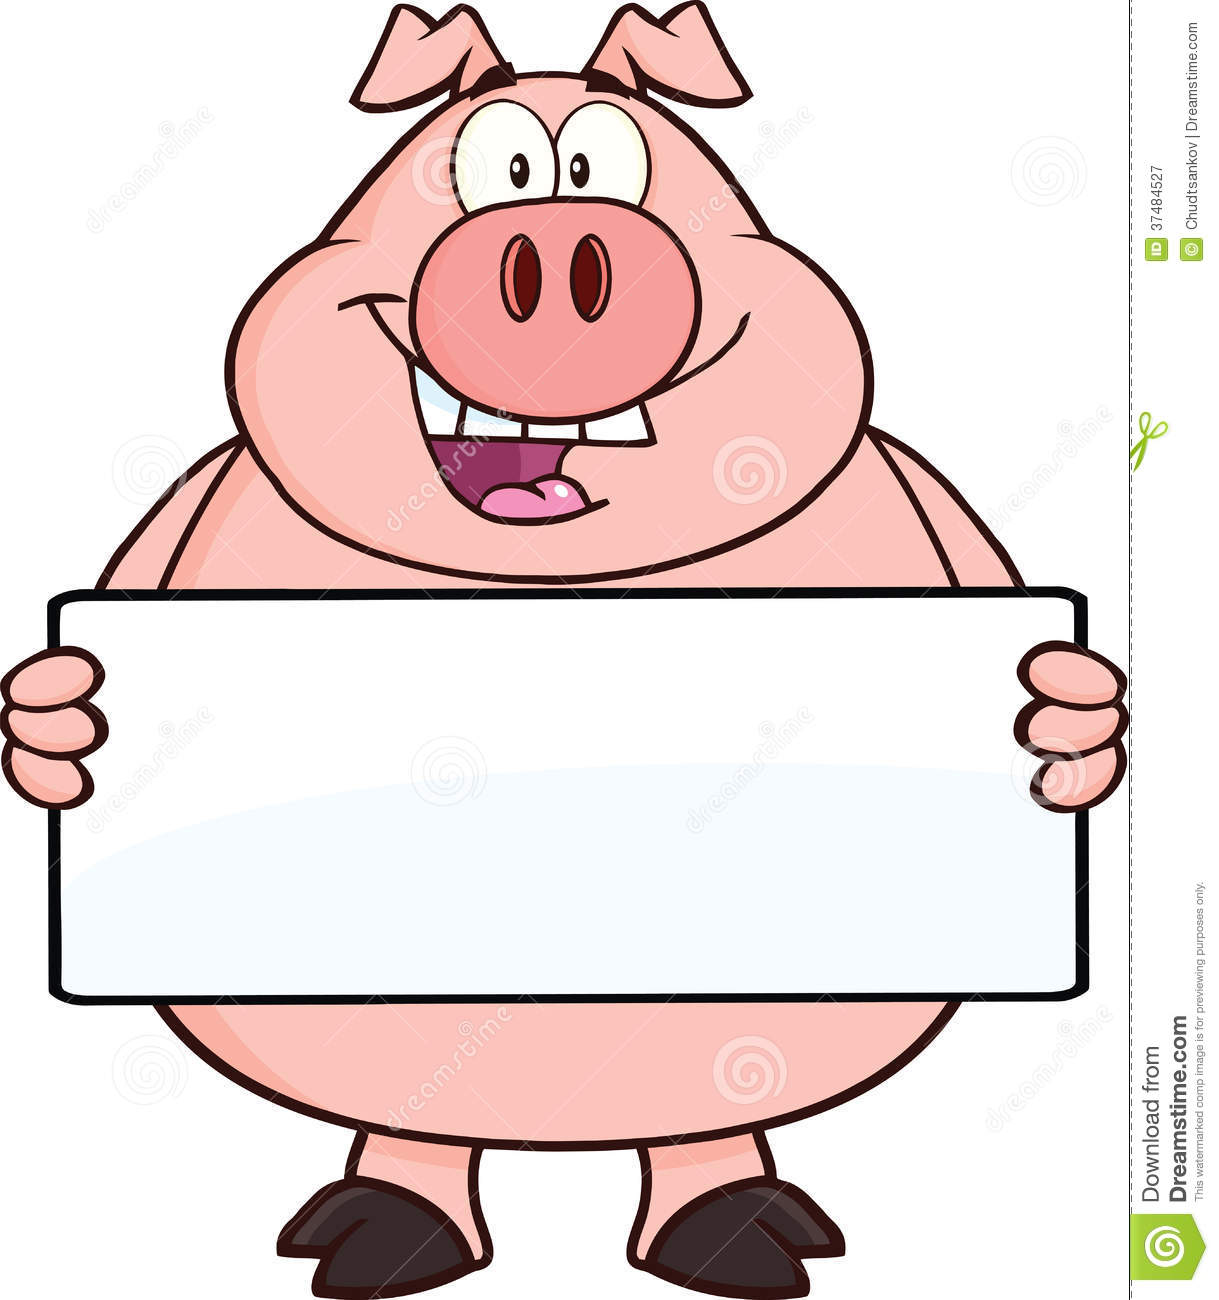 happy pig cartoon character holding a banner royalty free Pig Clip Art Pig Roast Silhouette